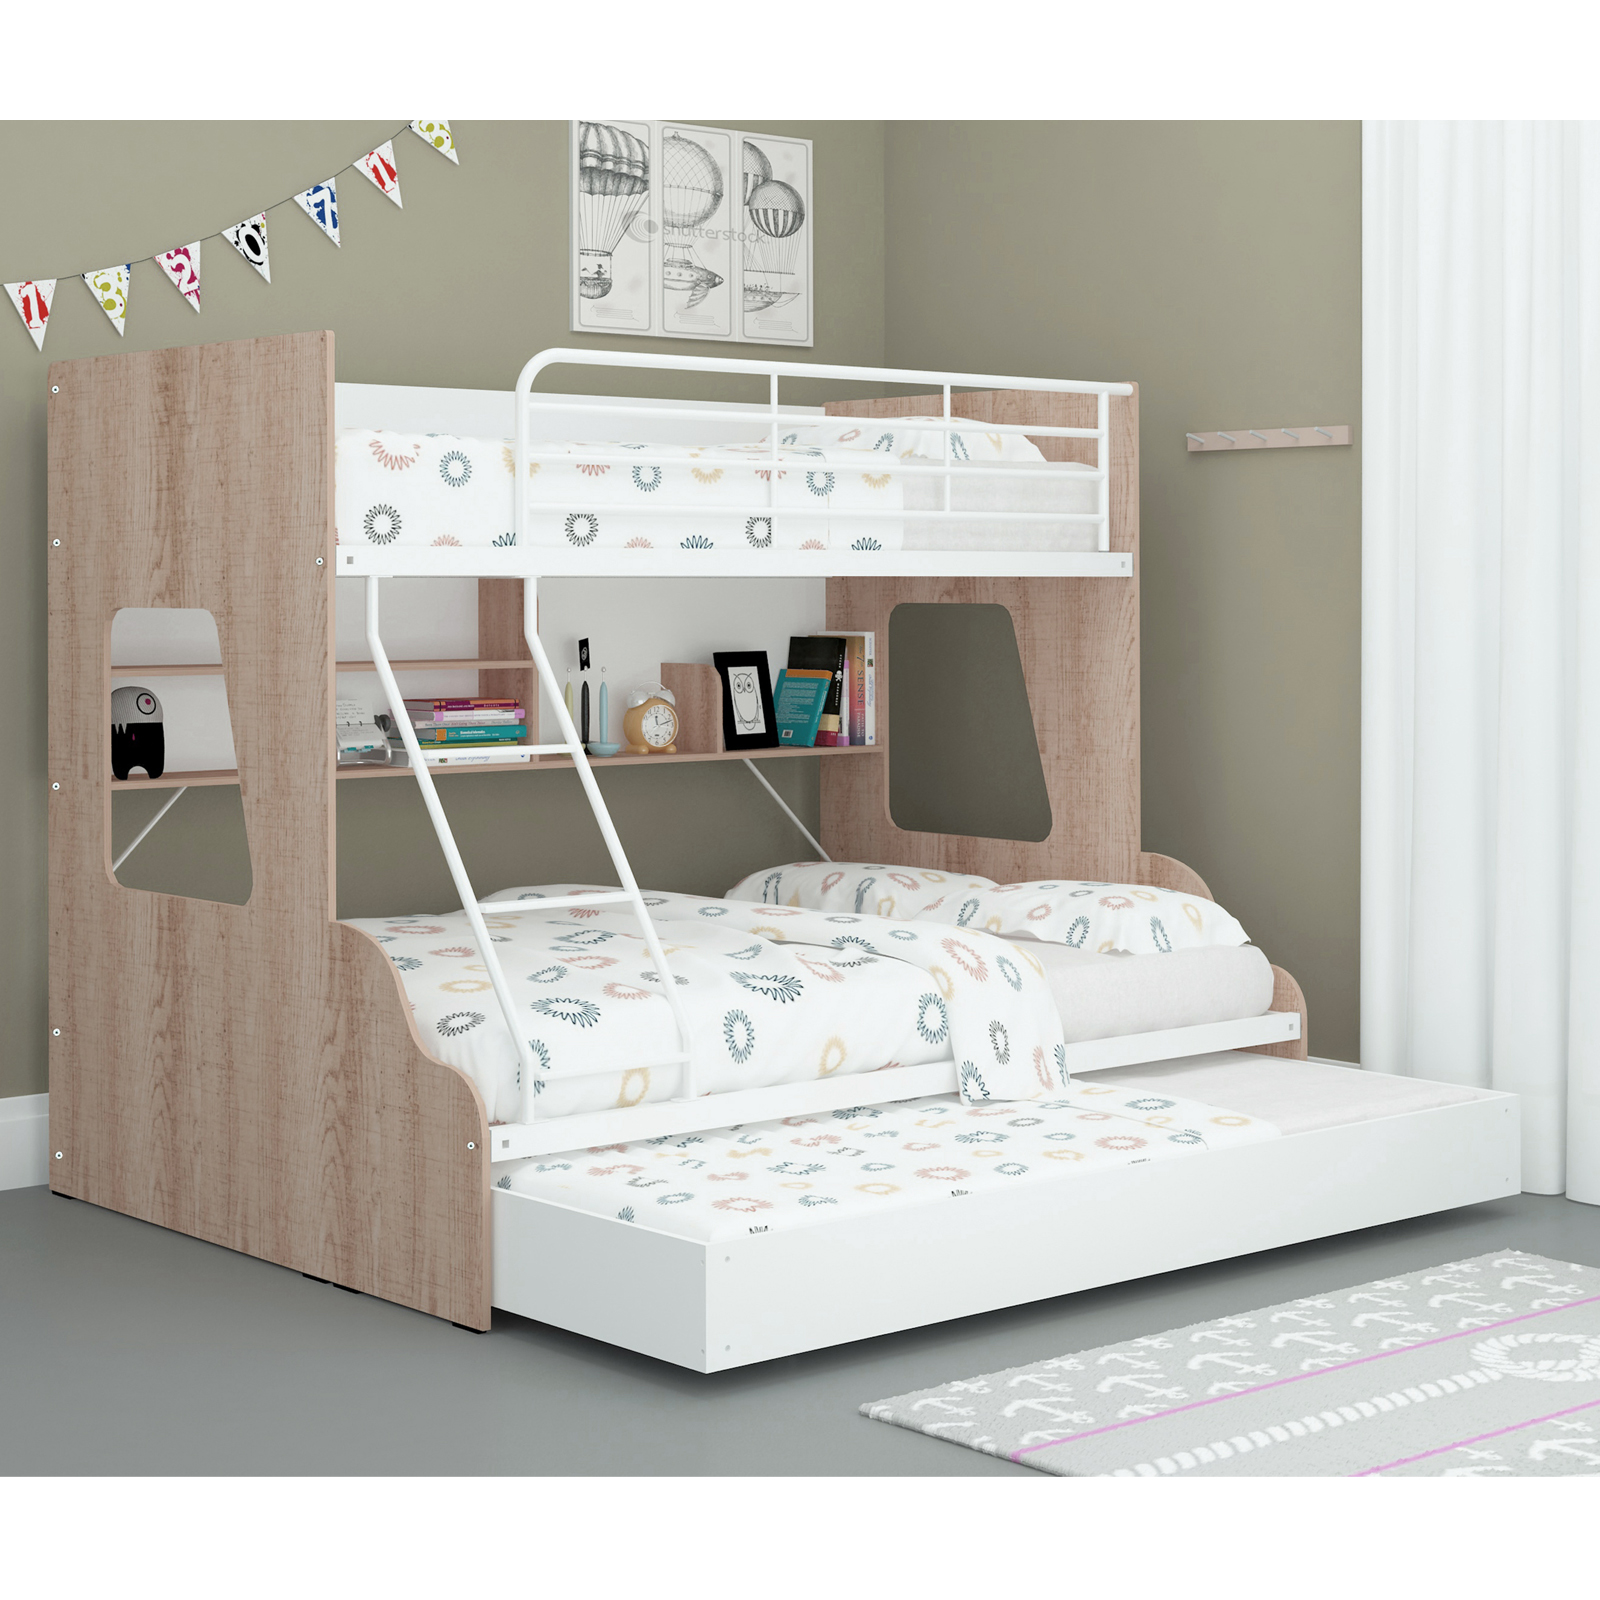 Single Over Double Trio Bunk Bed With Bookshelves And